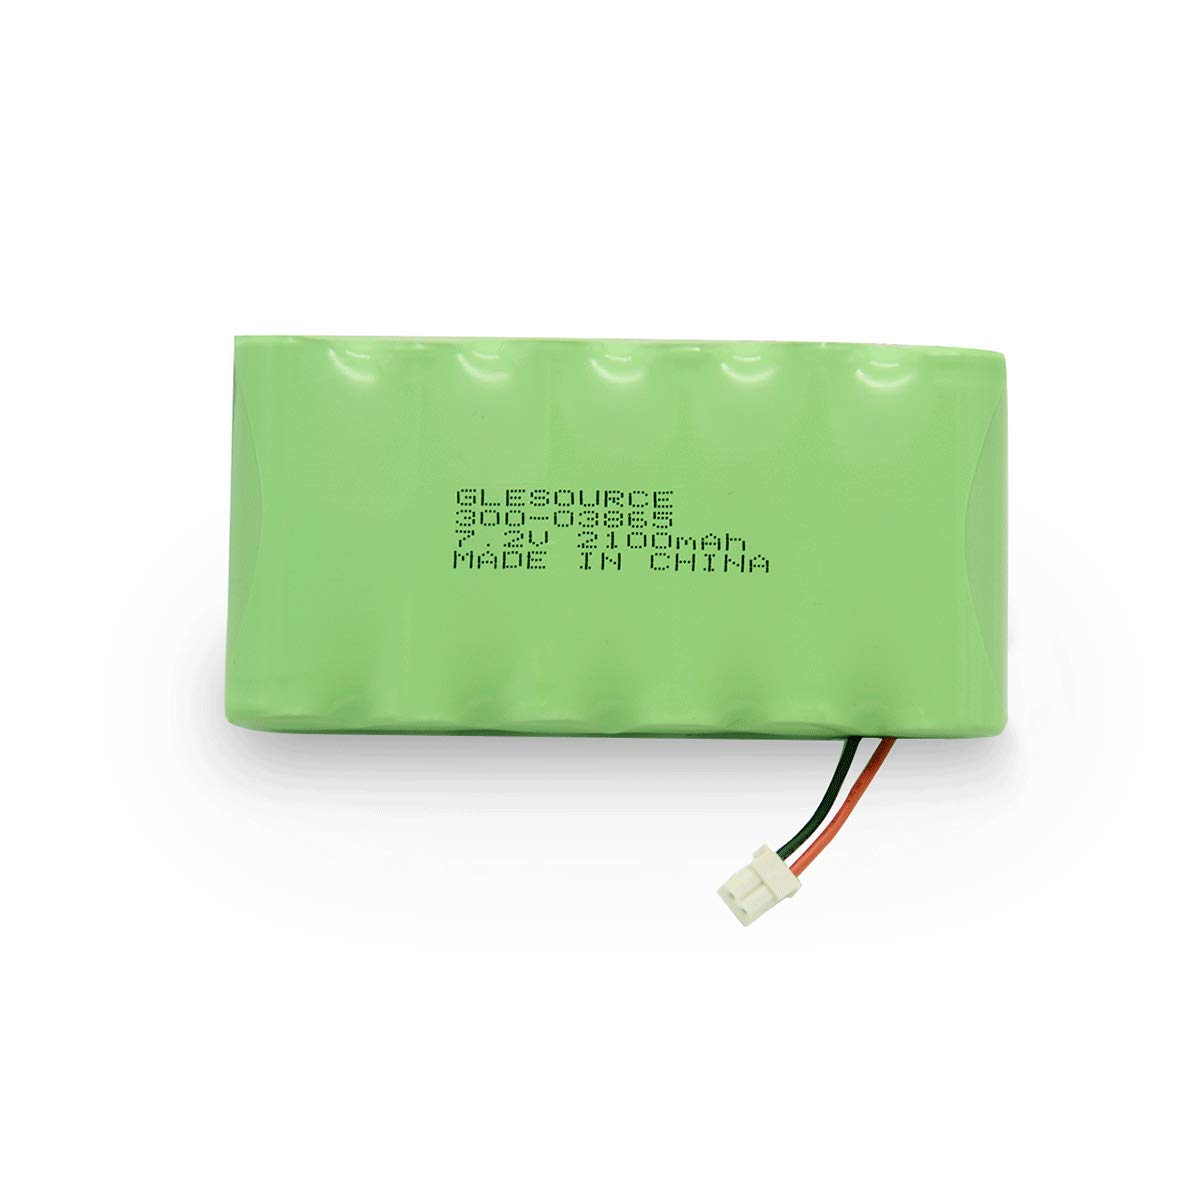 GLESOURCE 300-03865 7.2V Battery for Honey Well L3000 Lynx Touch L5100 Lynx Touch L5200 LYNXRCHKIT-HC Wireless Alarm Control Panels 2100mAh